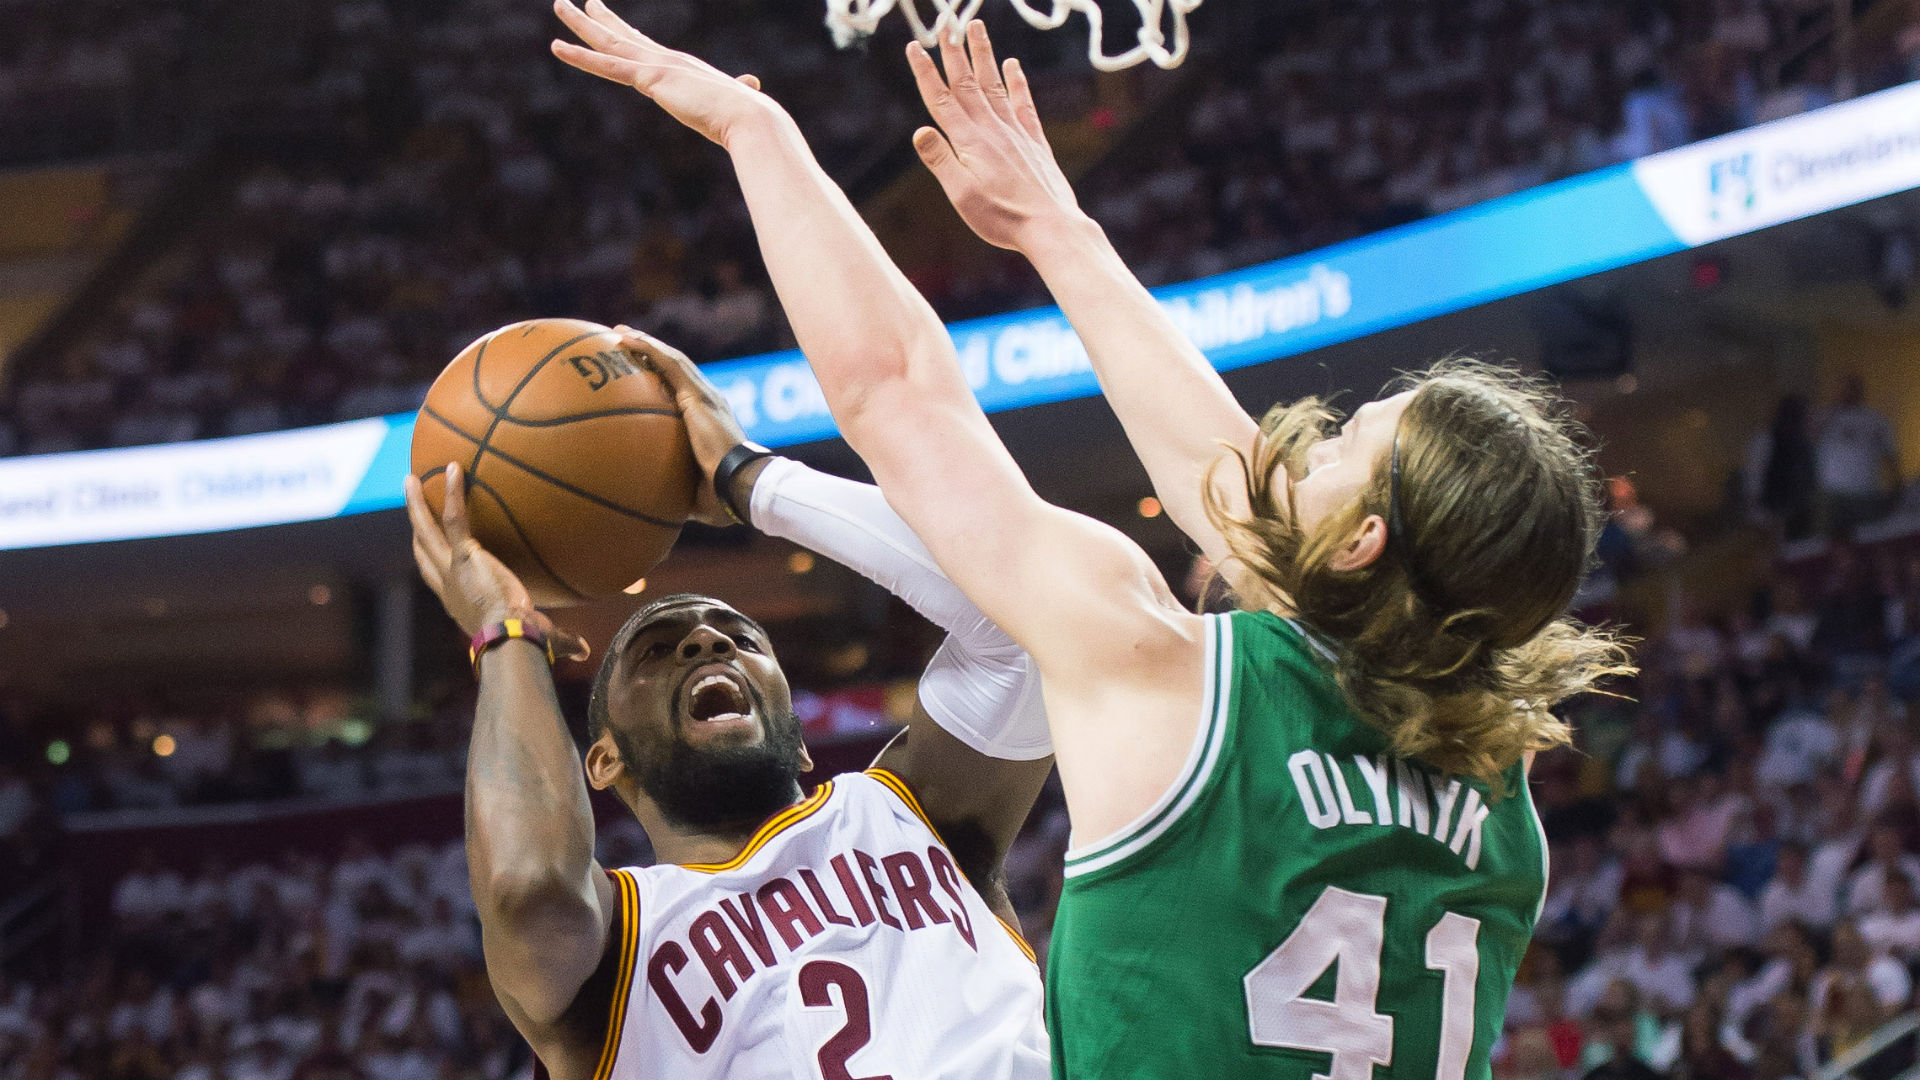 Kyrie Irving shines in playoff debut for the Cavaliers